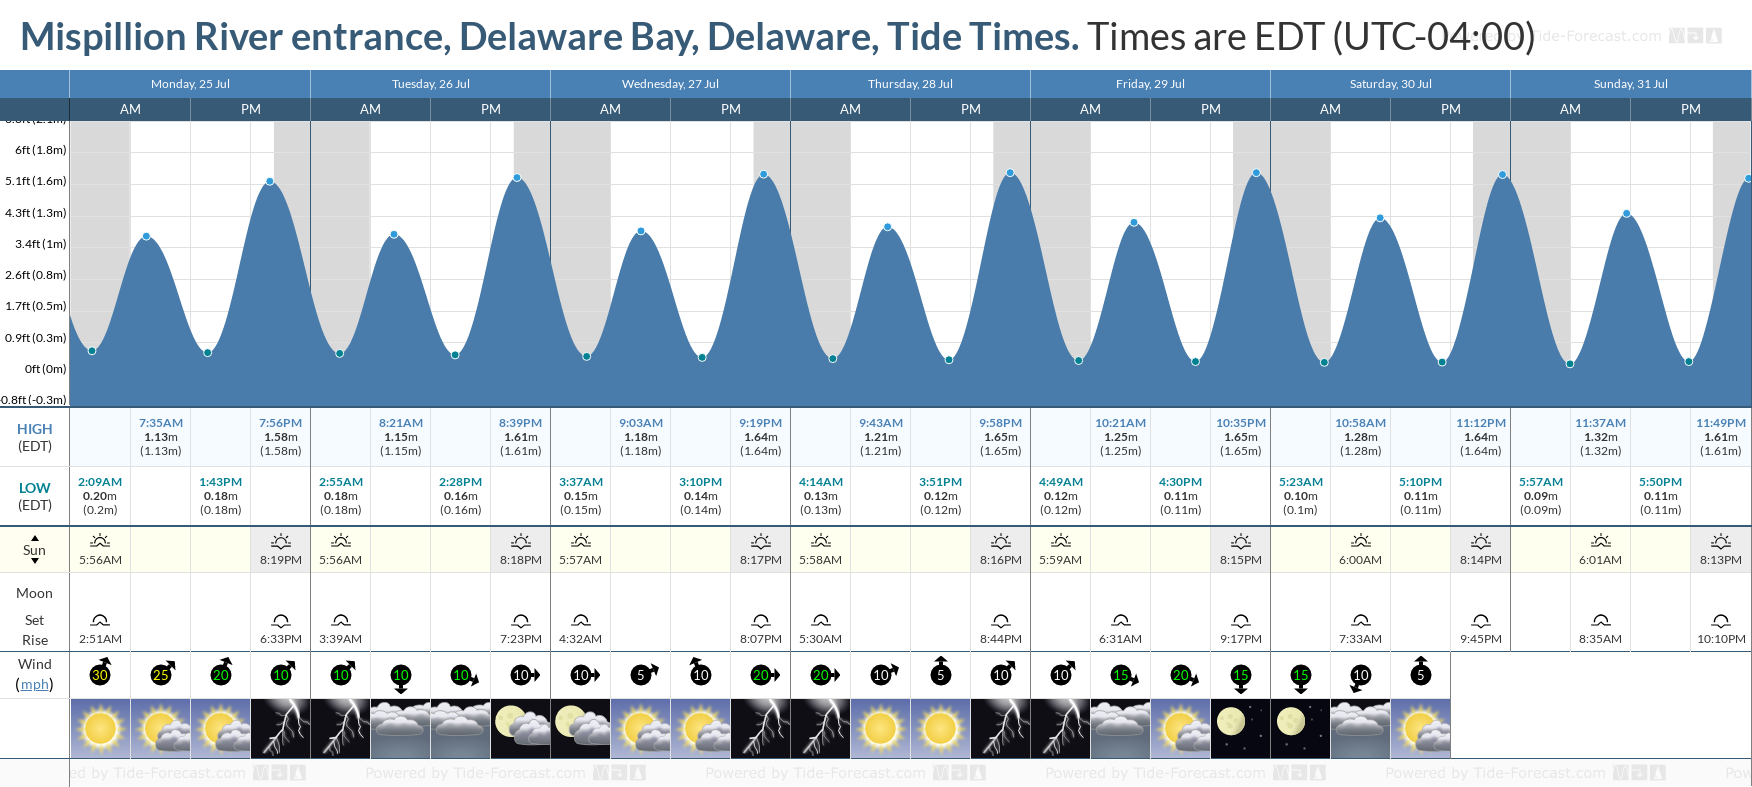 Mispillion River entrance, Delaware Bay, Delaware Tide Chart including high and low tide tide times for the next 7 days